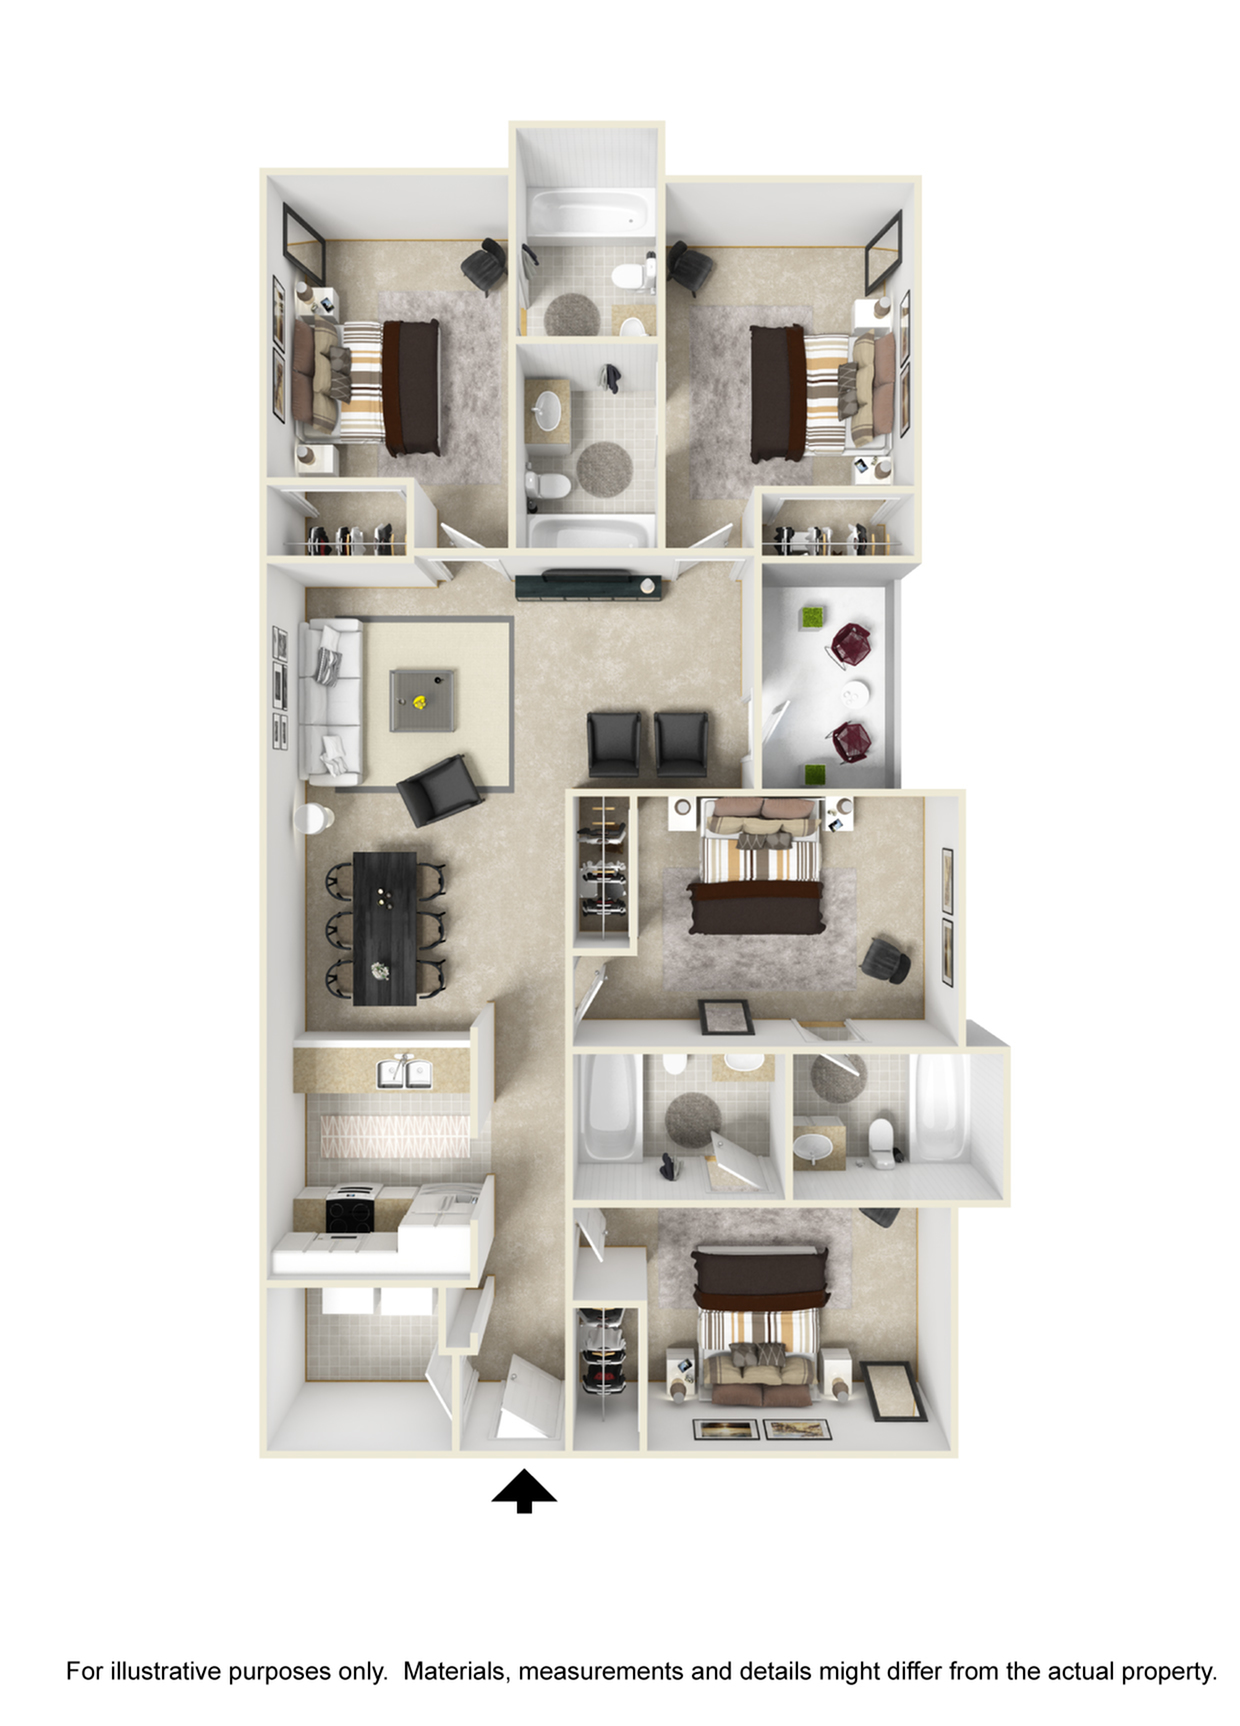 4 Bedroom 4 Bathroom Floor Plan Image of Santa Fe Floor Plan